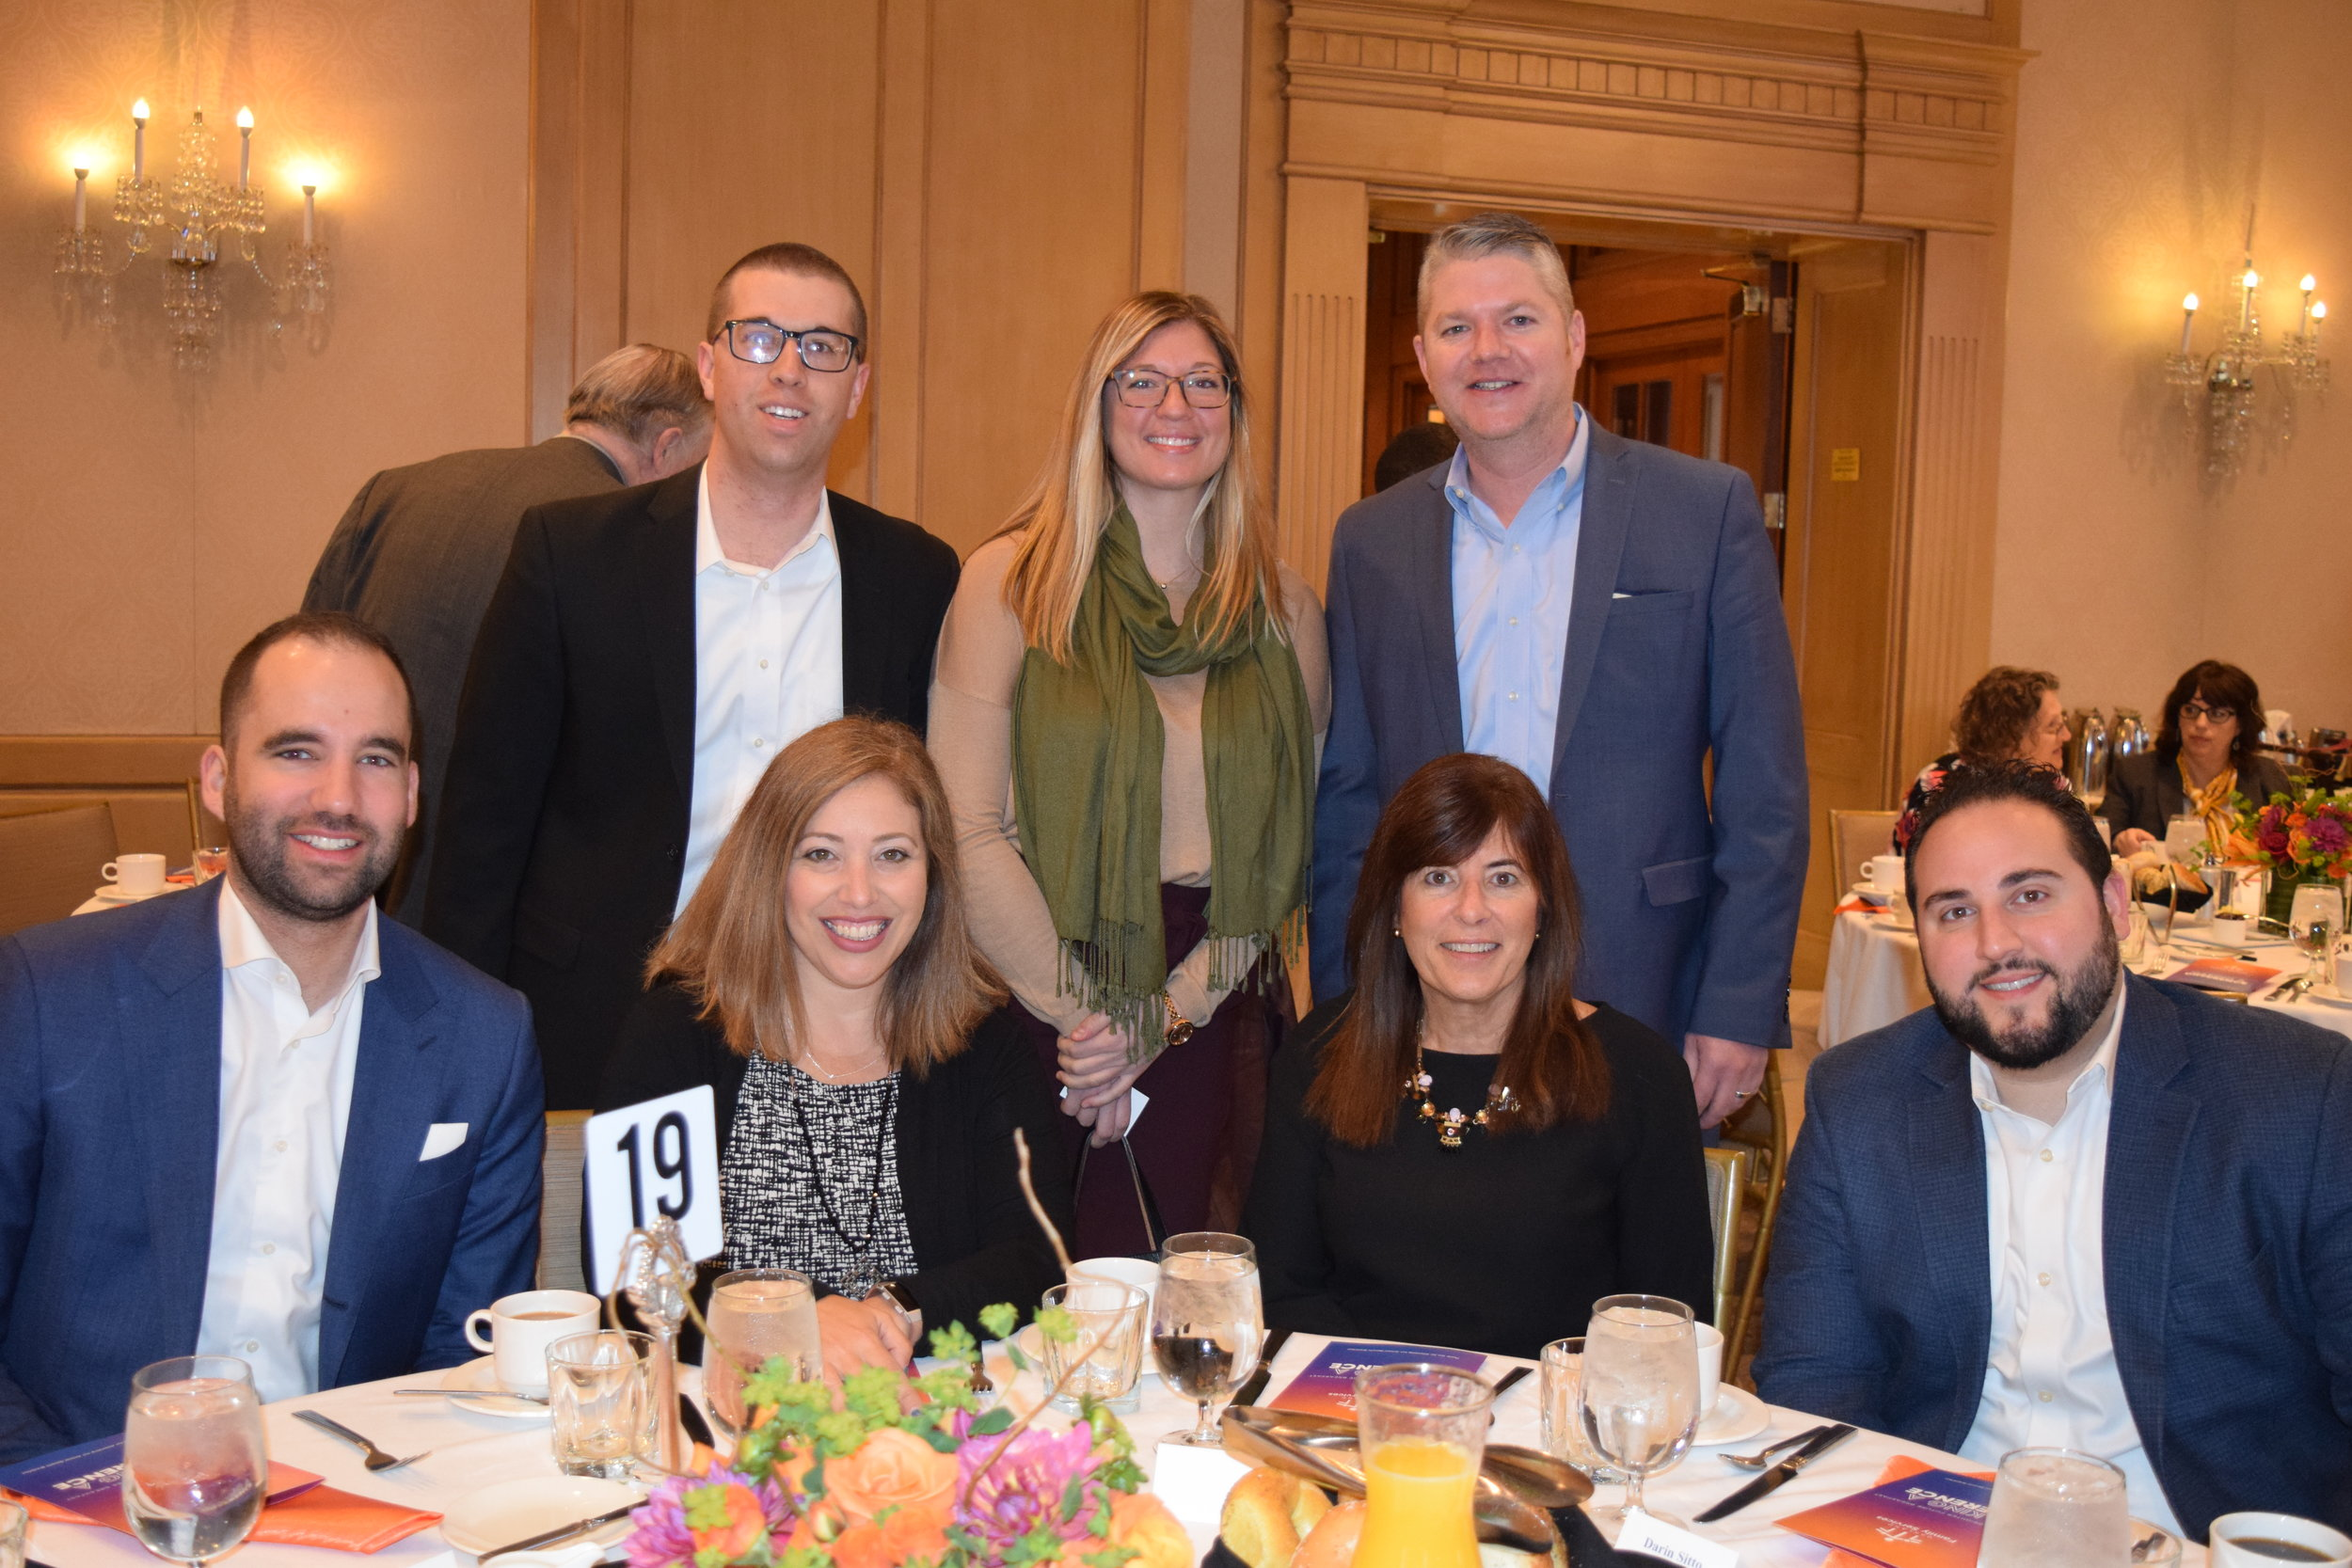 Representatives of breakfast sponsor KPMG, including board member Betsy Meter (front, second from right) attended the event.